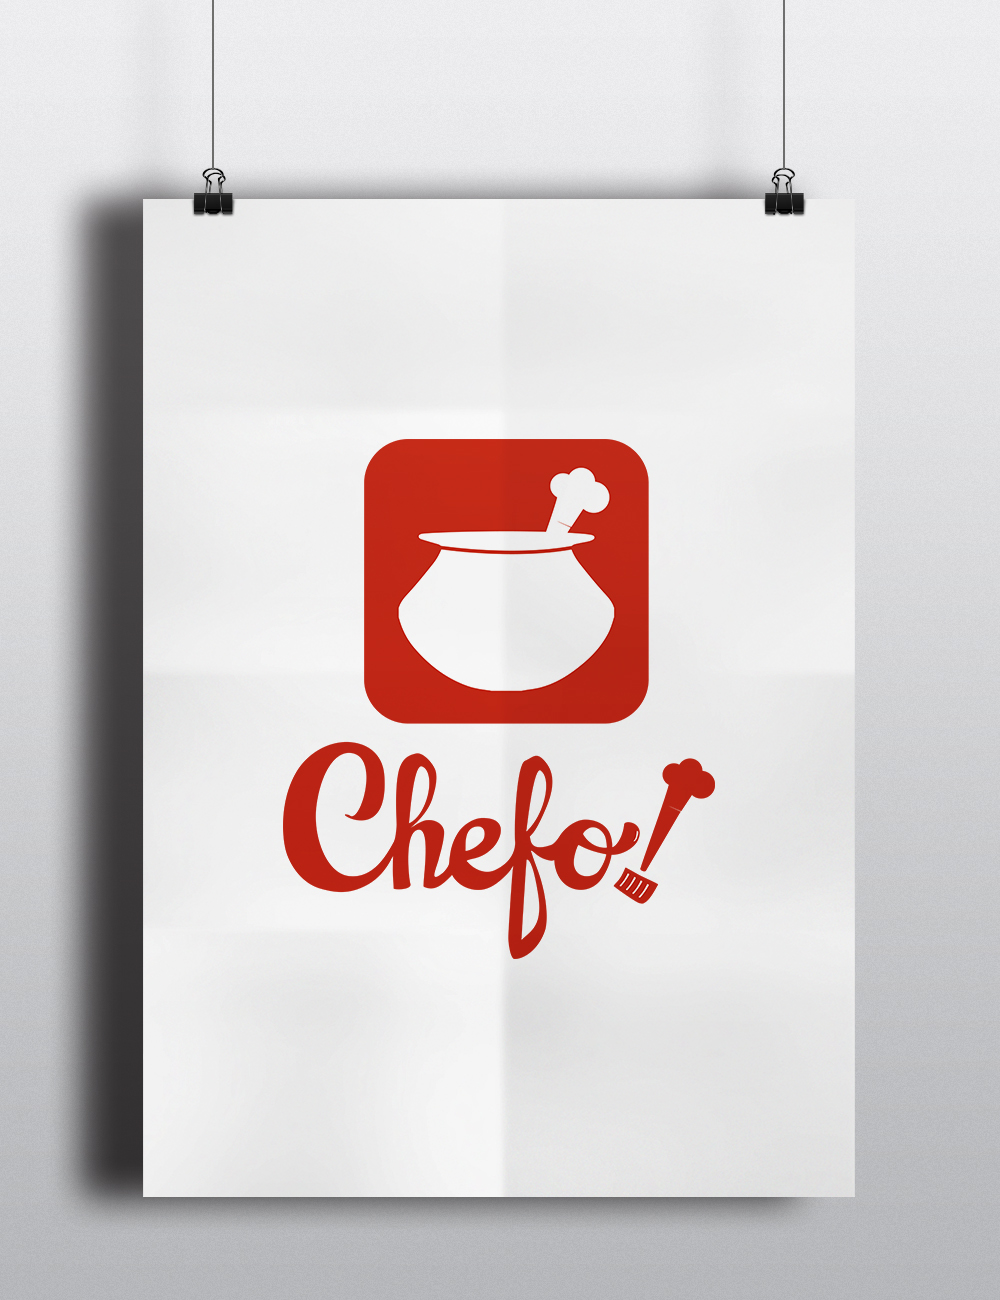 Branding Design for Chefo